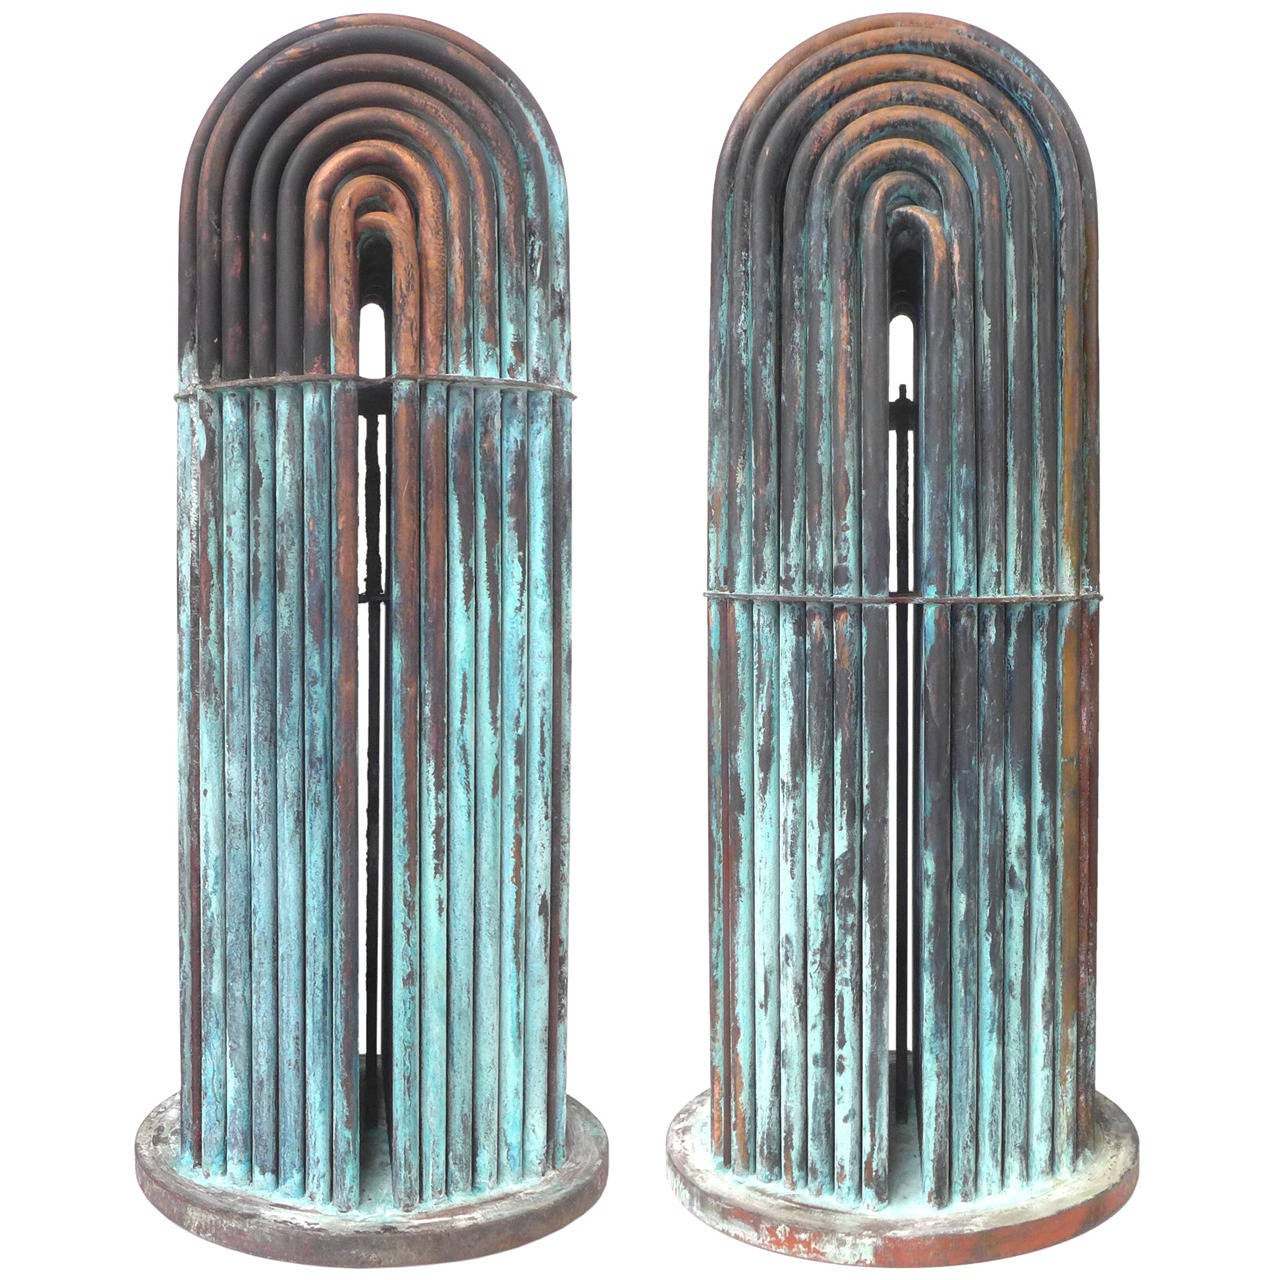 Machine Age Copper Pipe Sculptures For Sale At 1stdibs